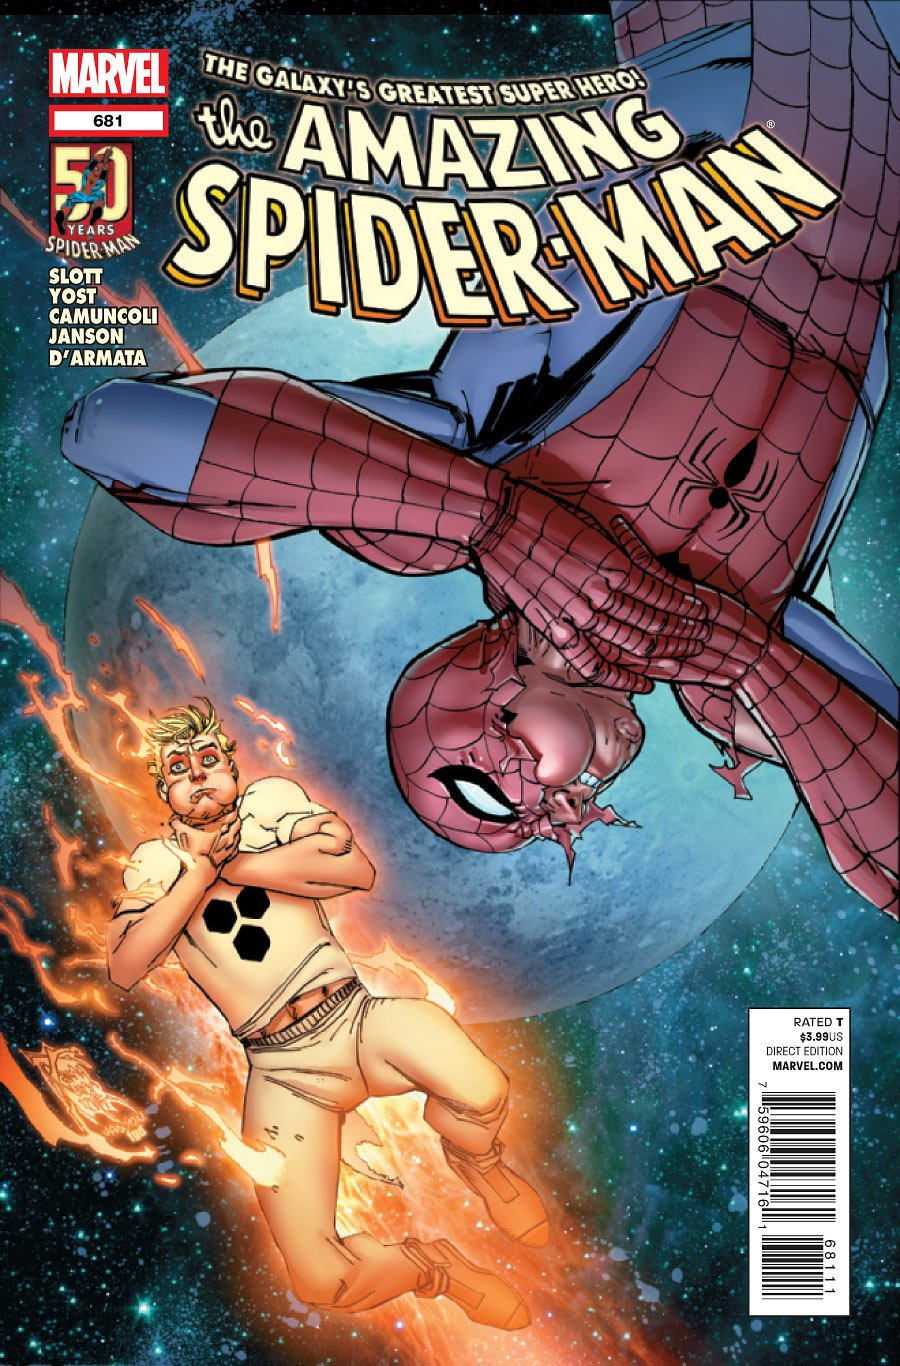 Amazing Spider-Man #681